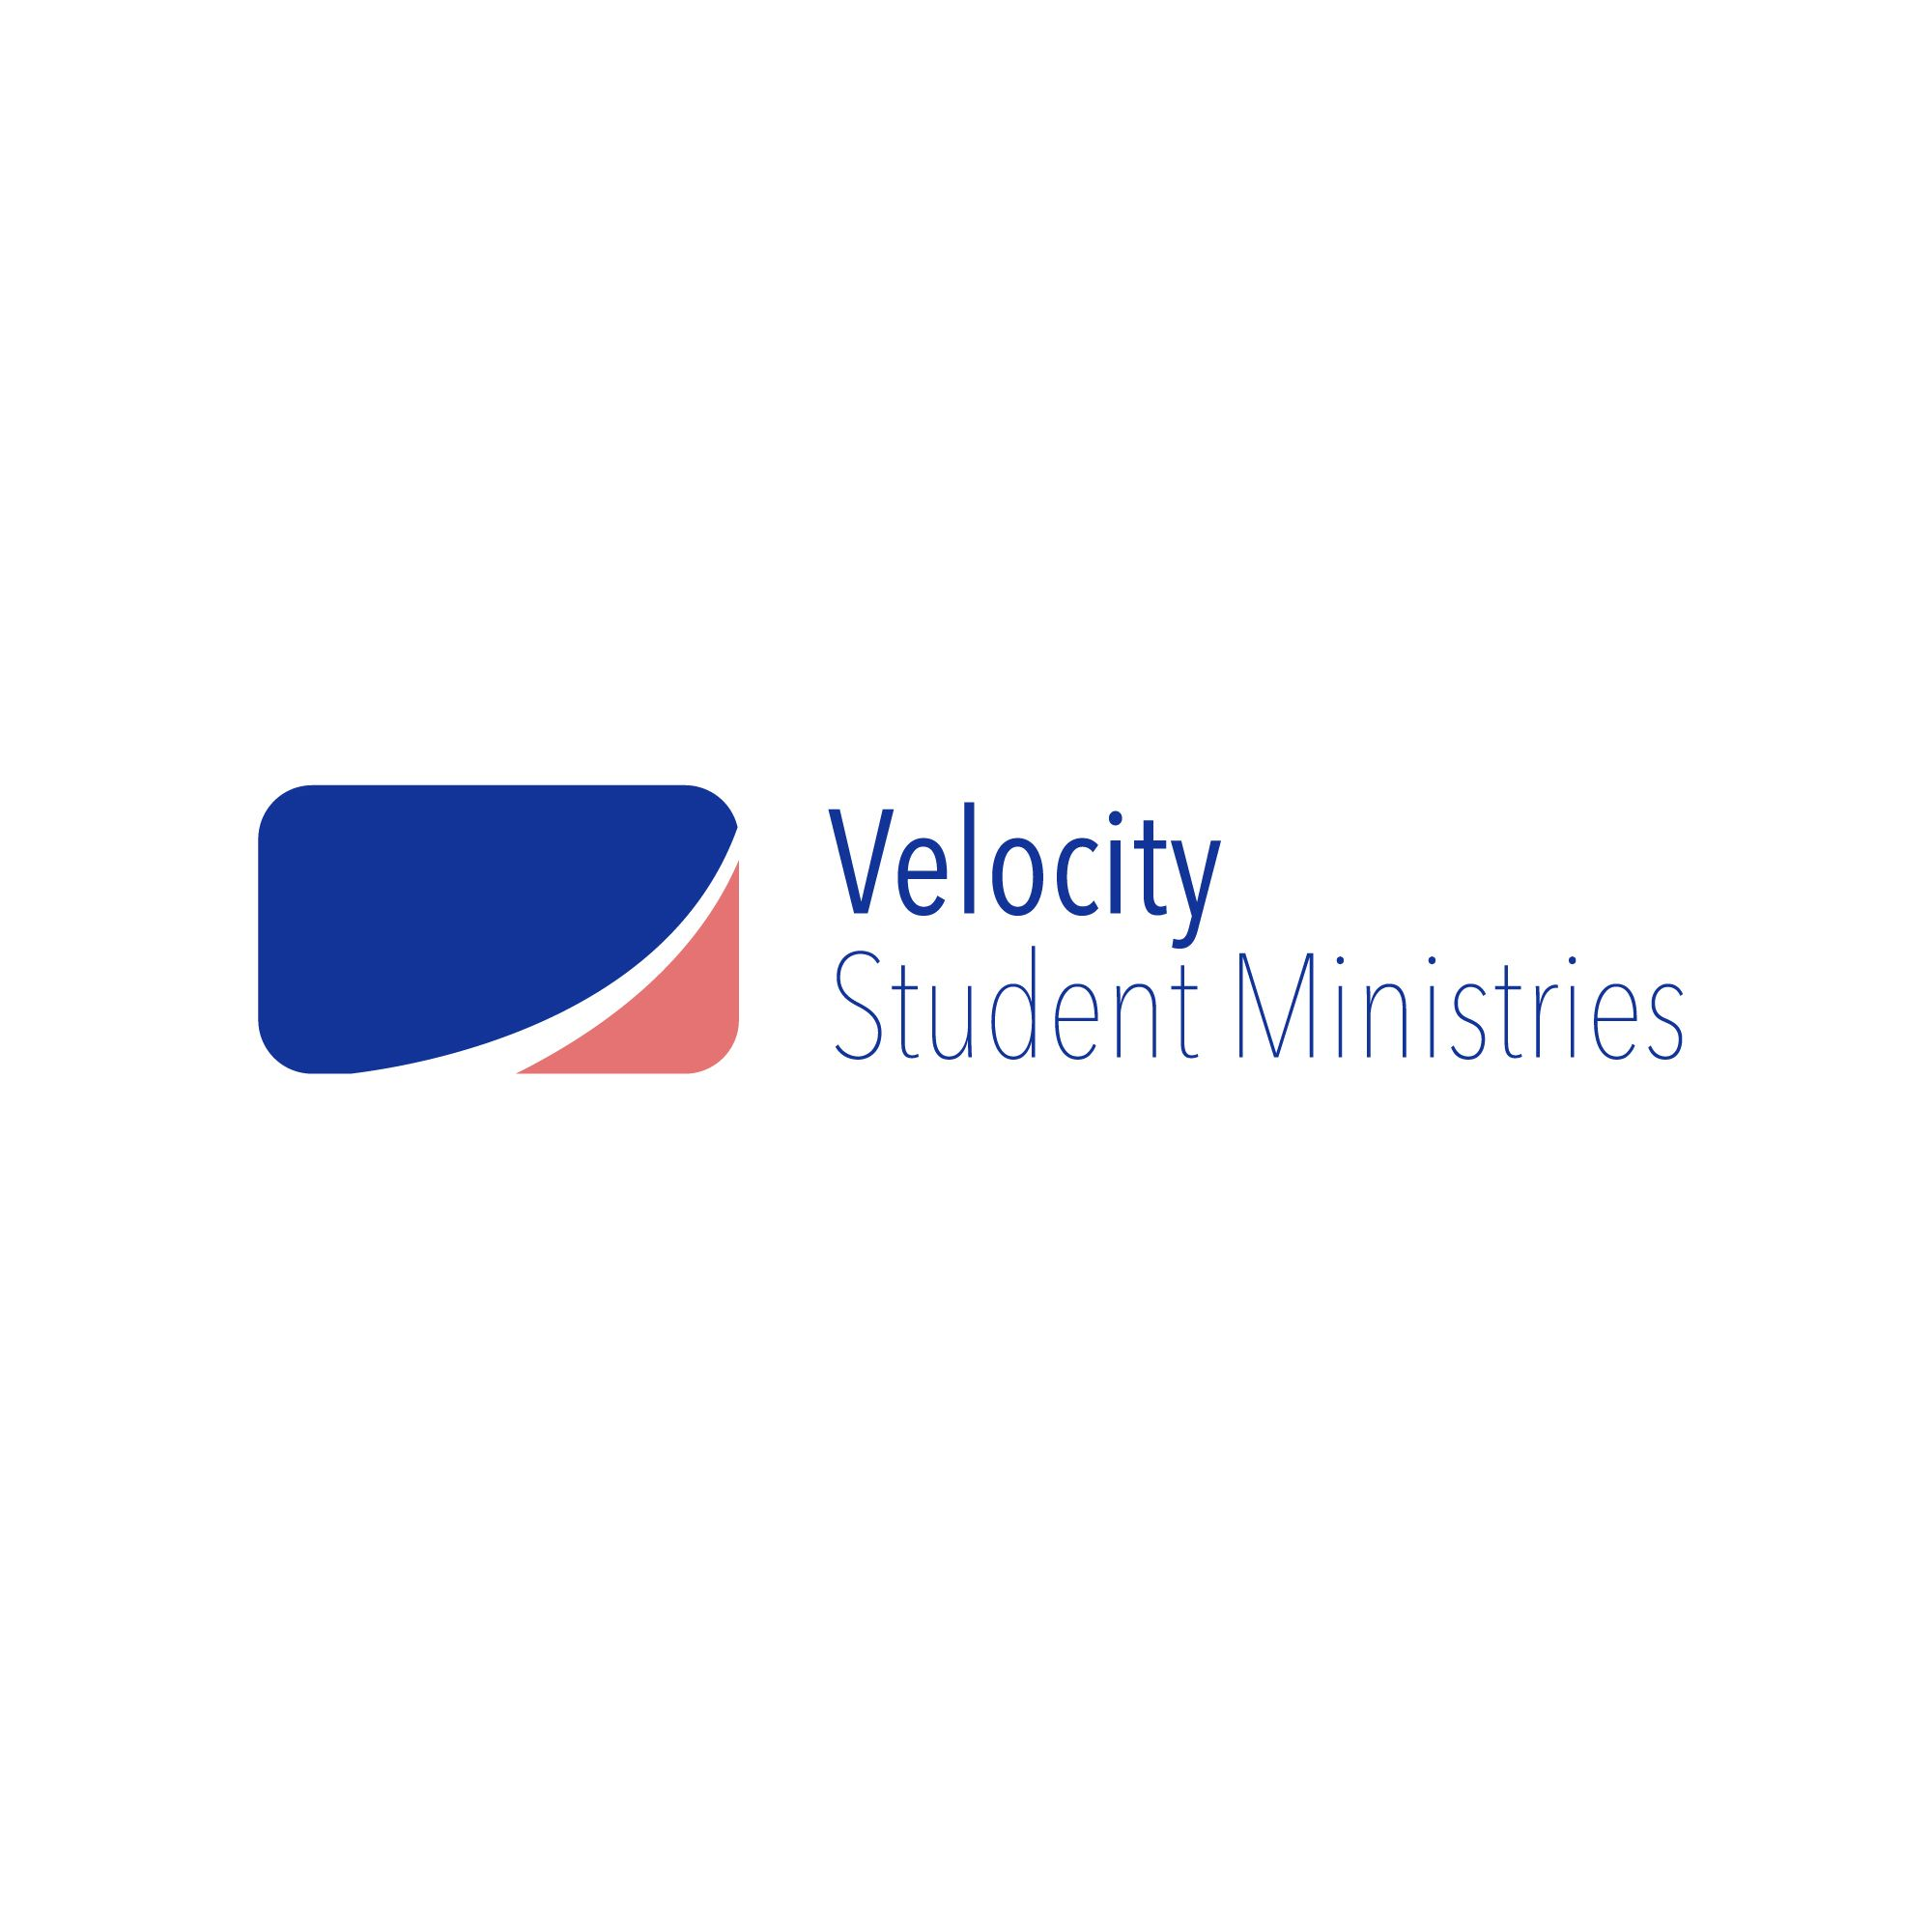 velocity student ministry youth group logos youth group logo rh pinterest co uk youth group logo design youth group logo creator